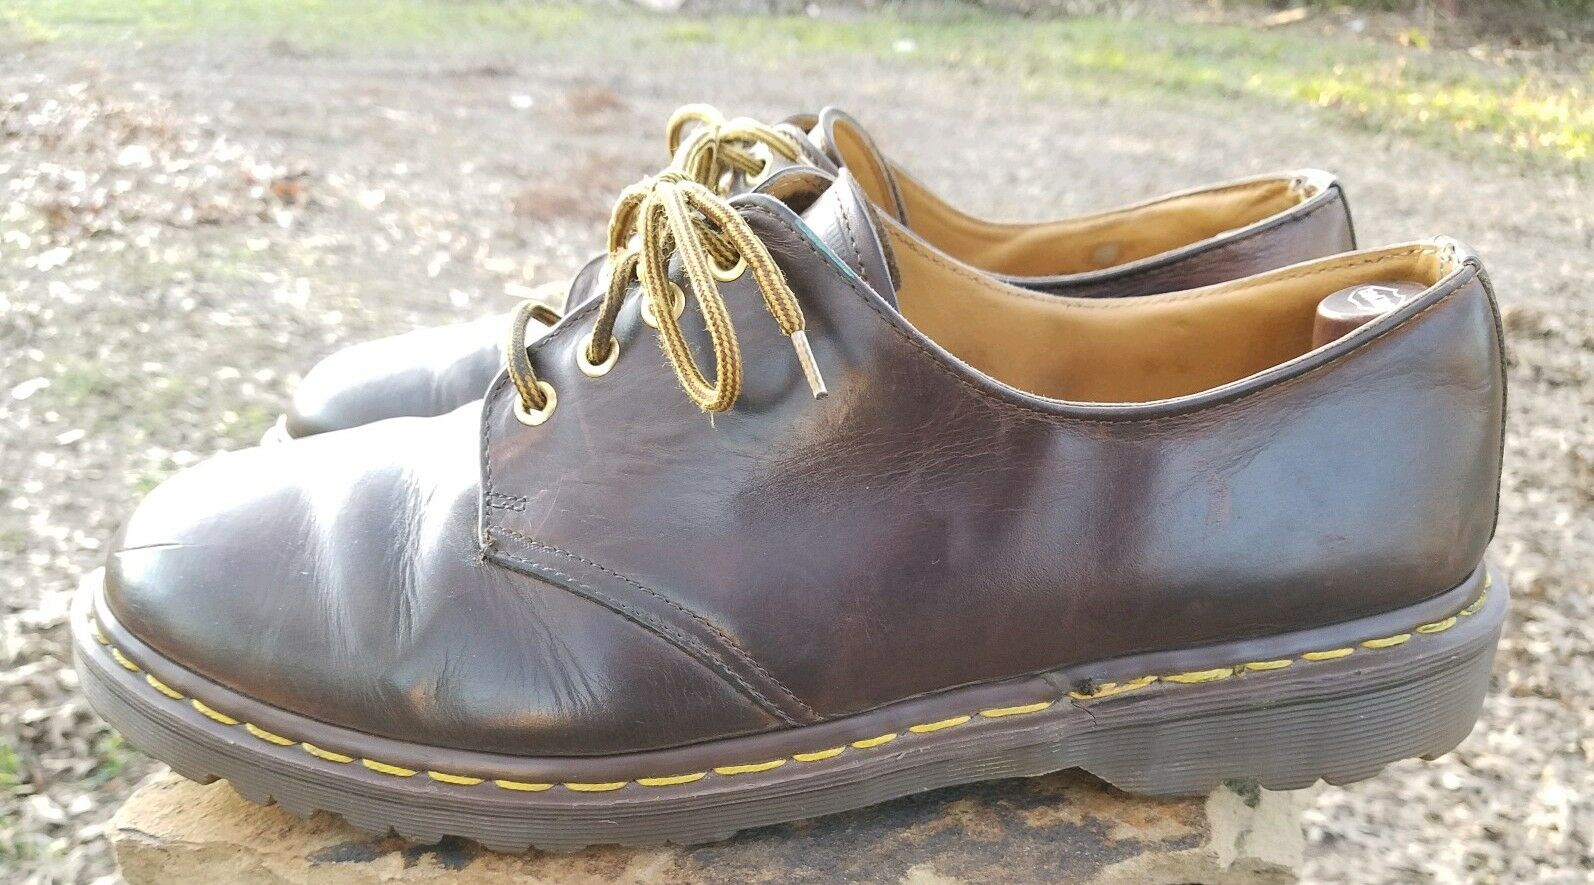 Doc DR MARTENS Distressed Brown Leather 4-Eye Gibson 1561 Men's Size US 14